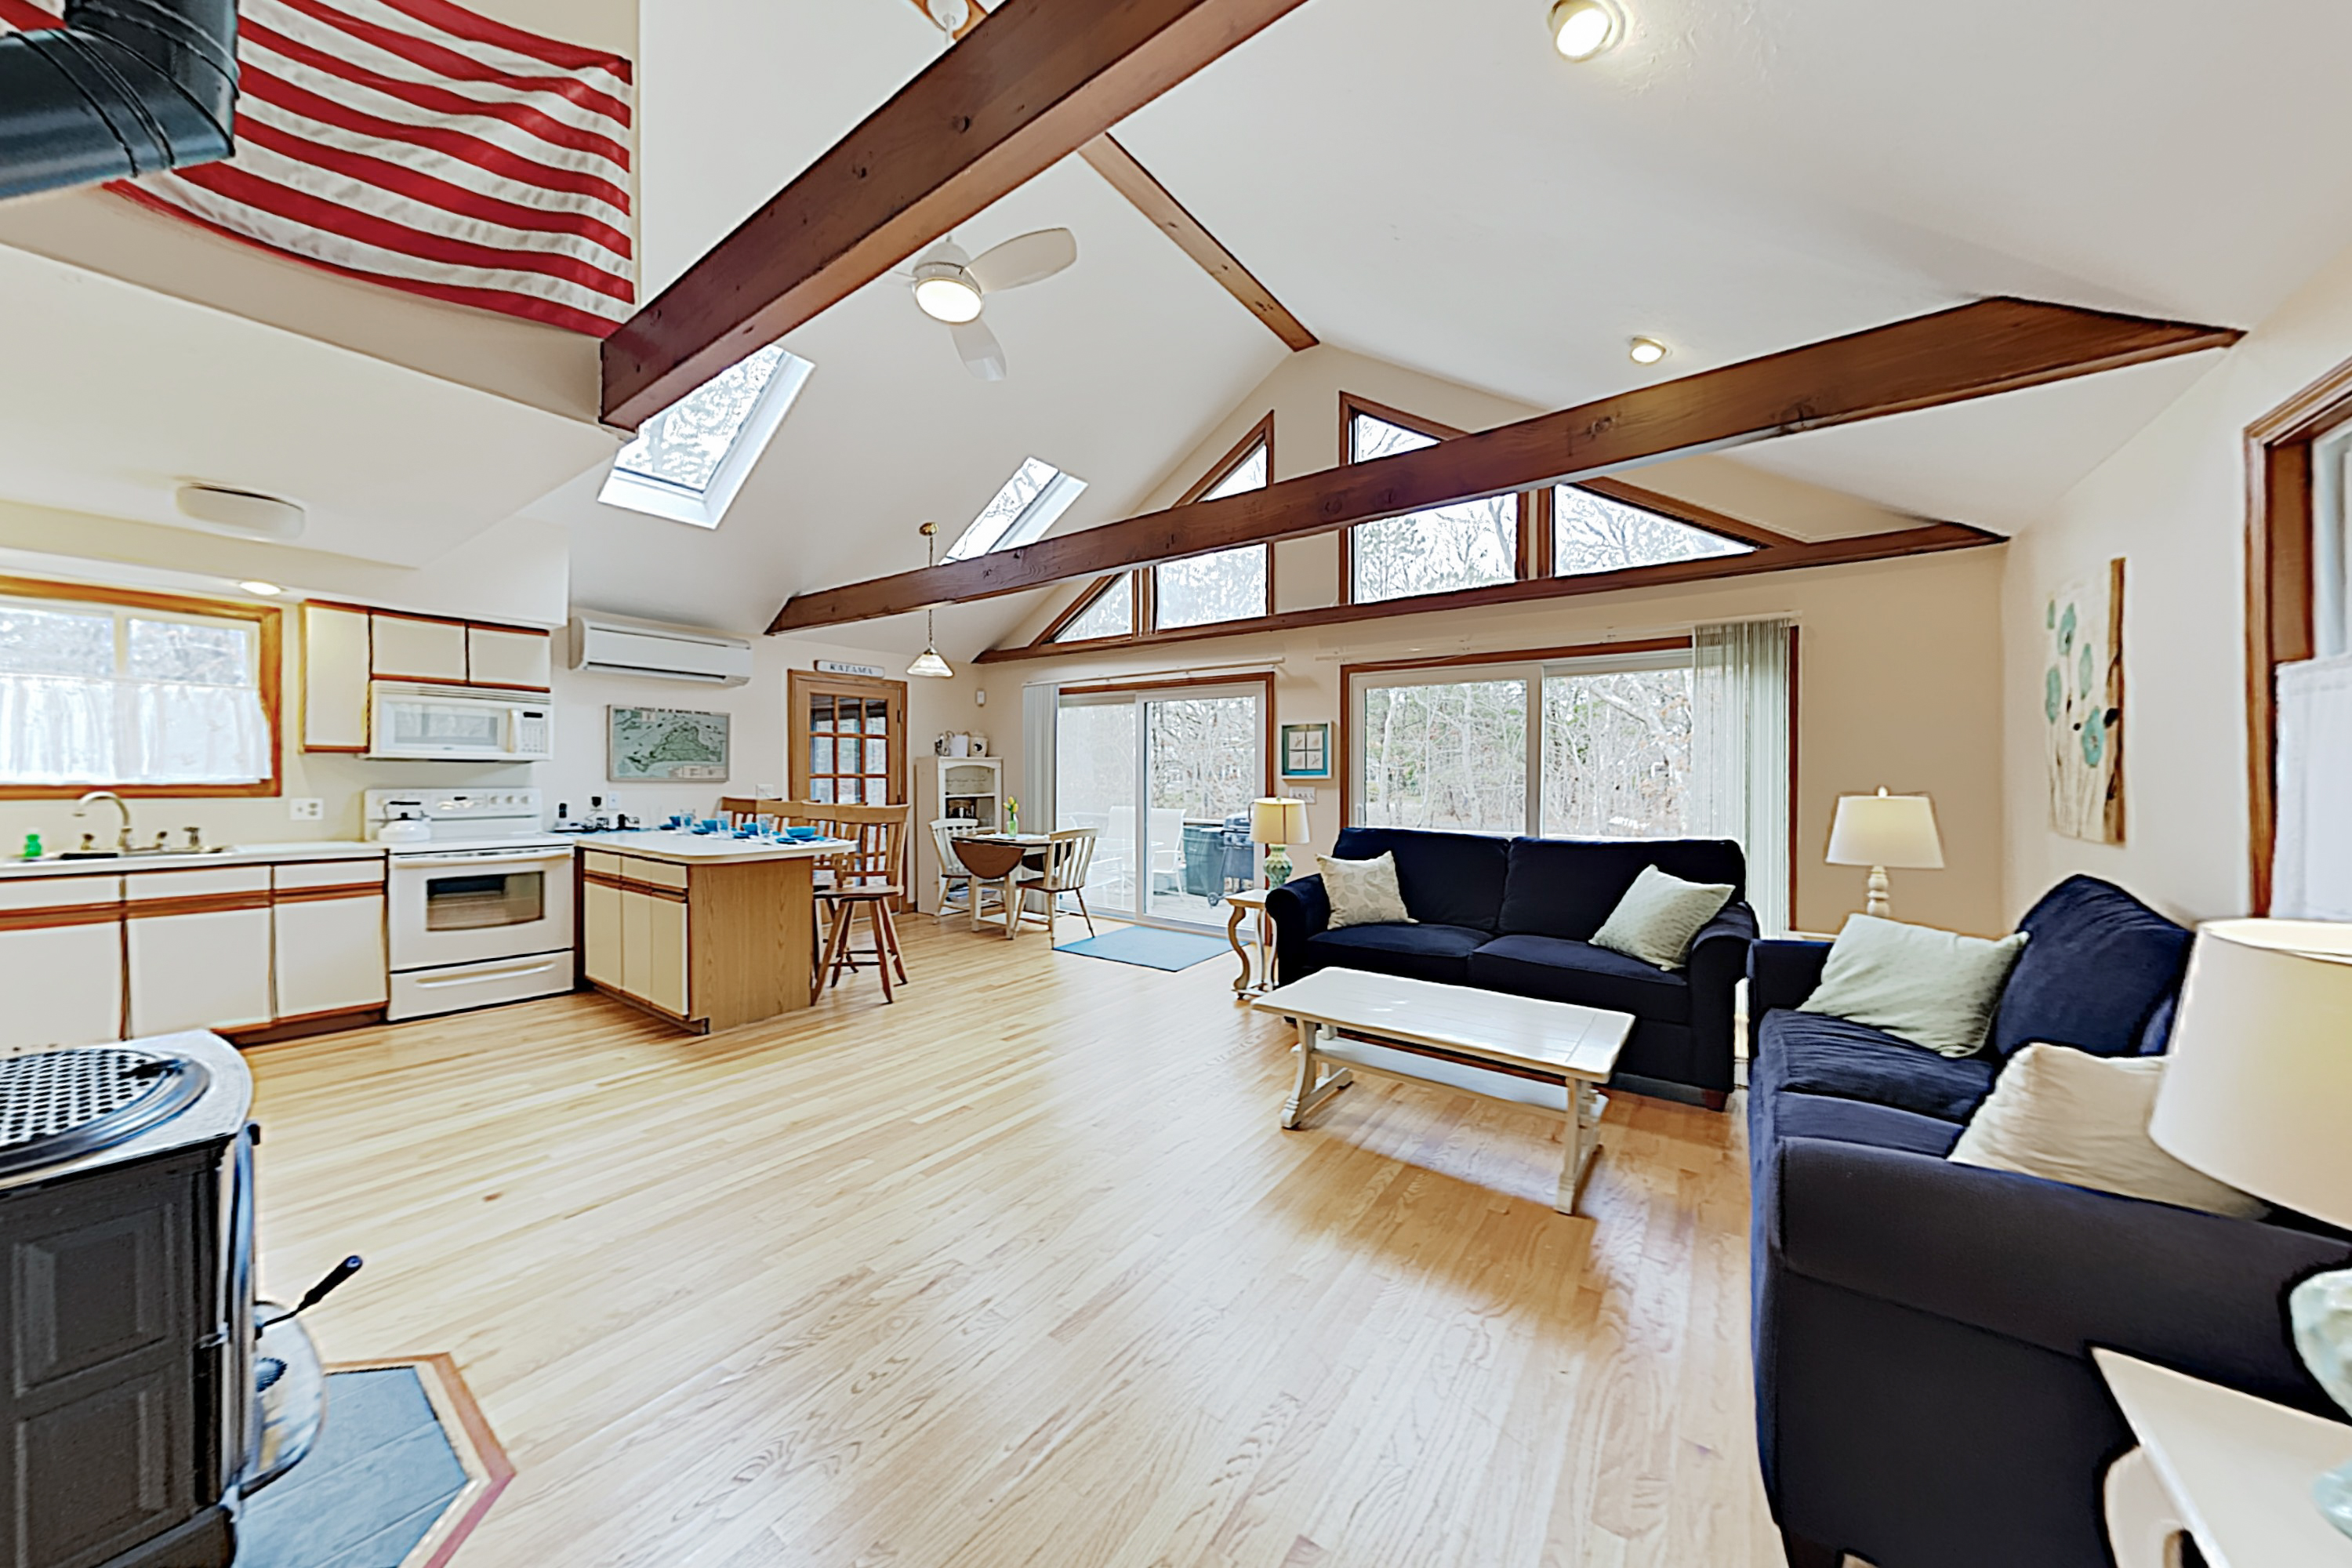 Edgartown MA Vacation Rental Welcome to Edgartown!